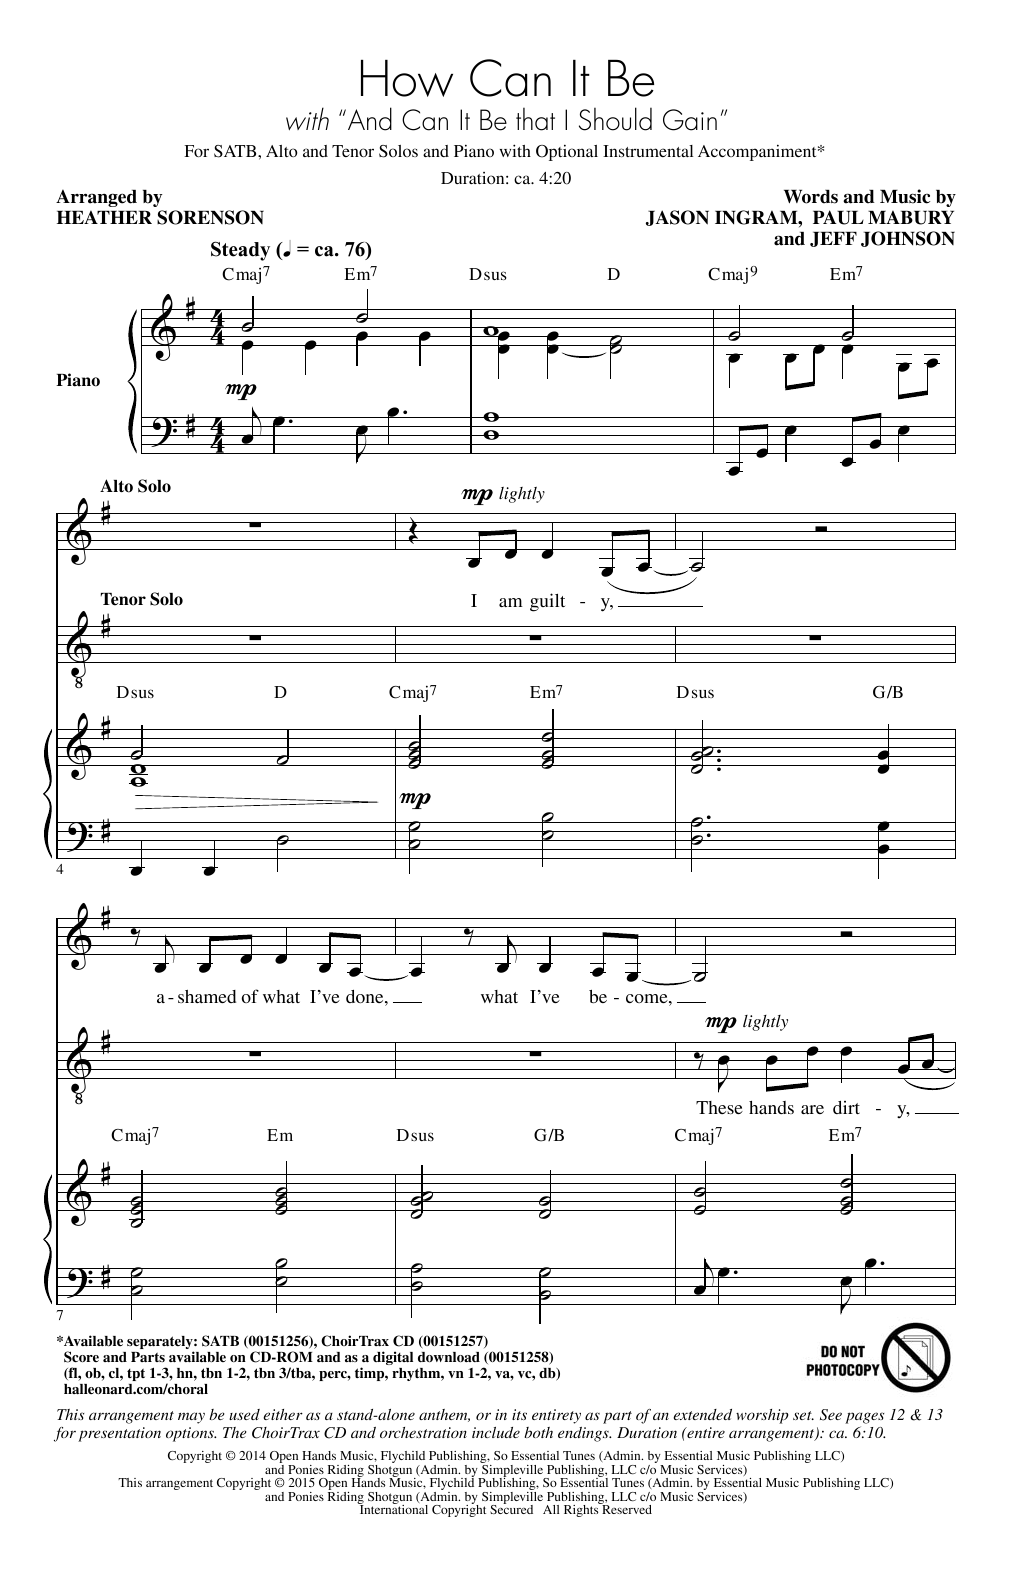 How Can It Be/ And Can It Be That I Should Gain (arr. Heather Sorenson) Sheet Music